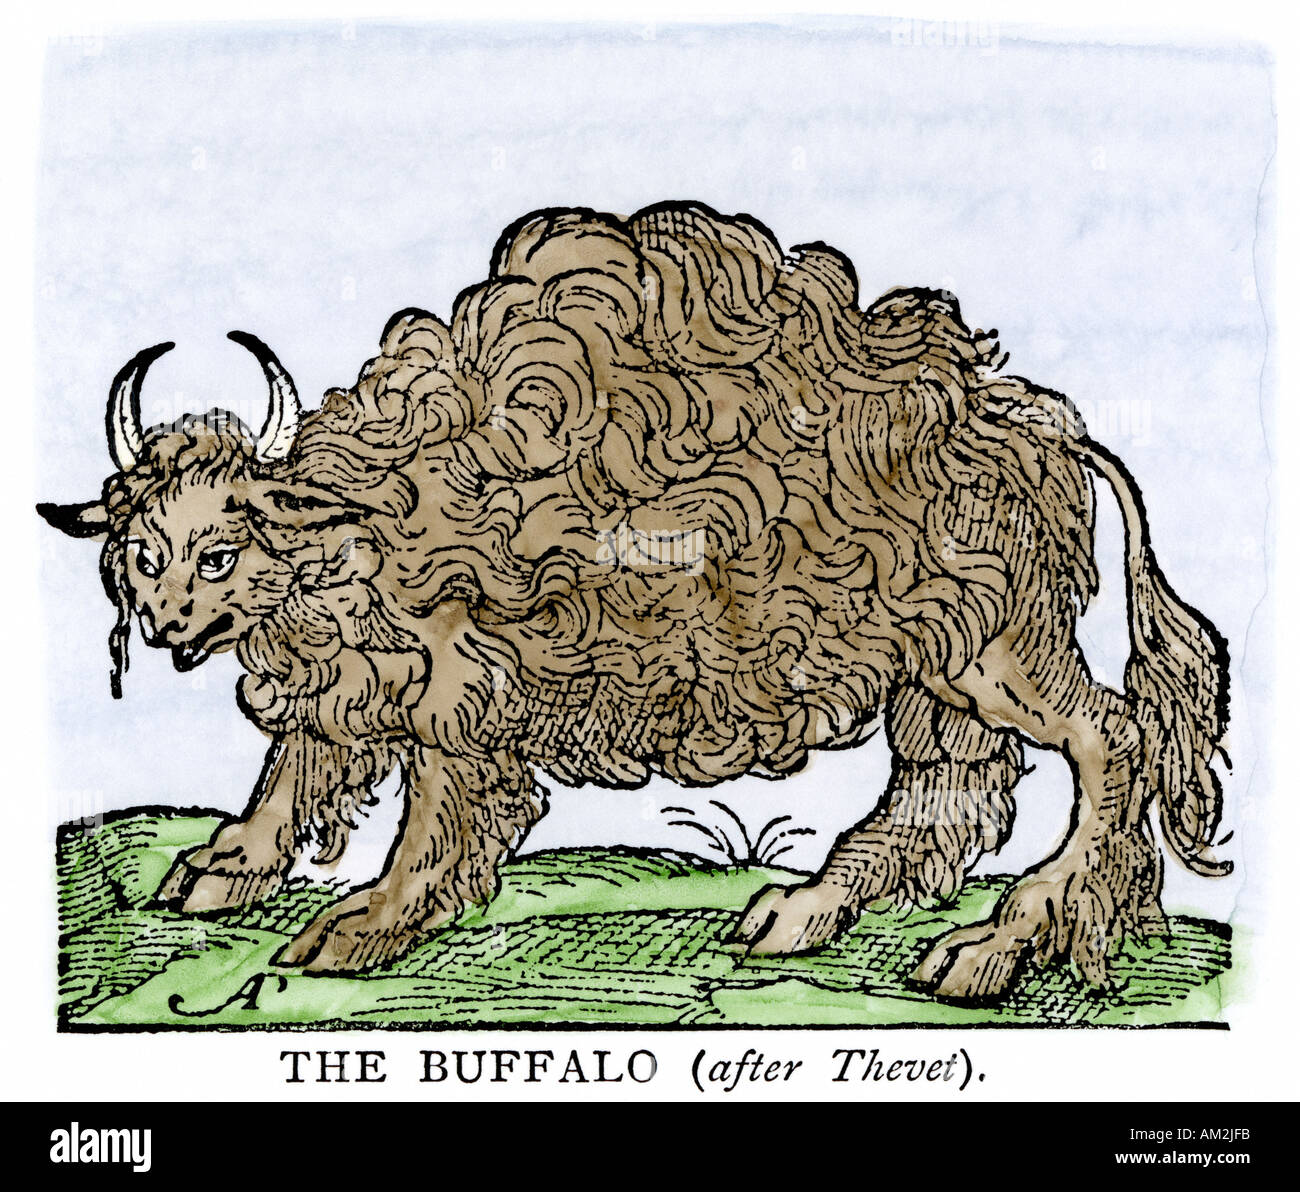 Possibly the earliest engraving of an American buffalo 1558 first mentioned by Alvar Nunez Cabeza de Vaca. Hand-colored woodcut - Stock Image